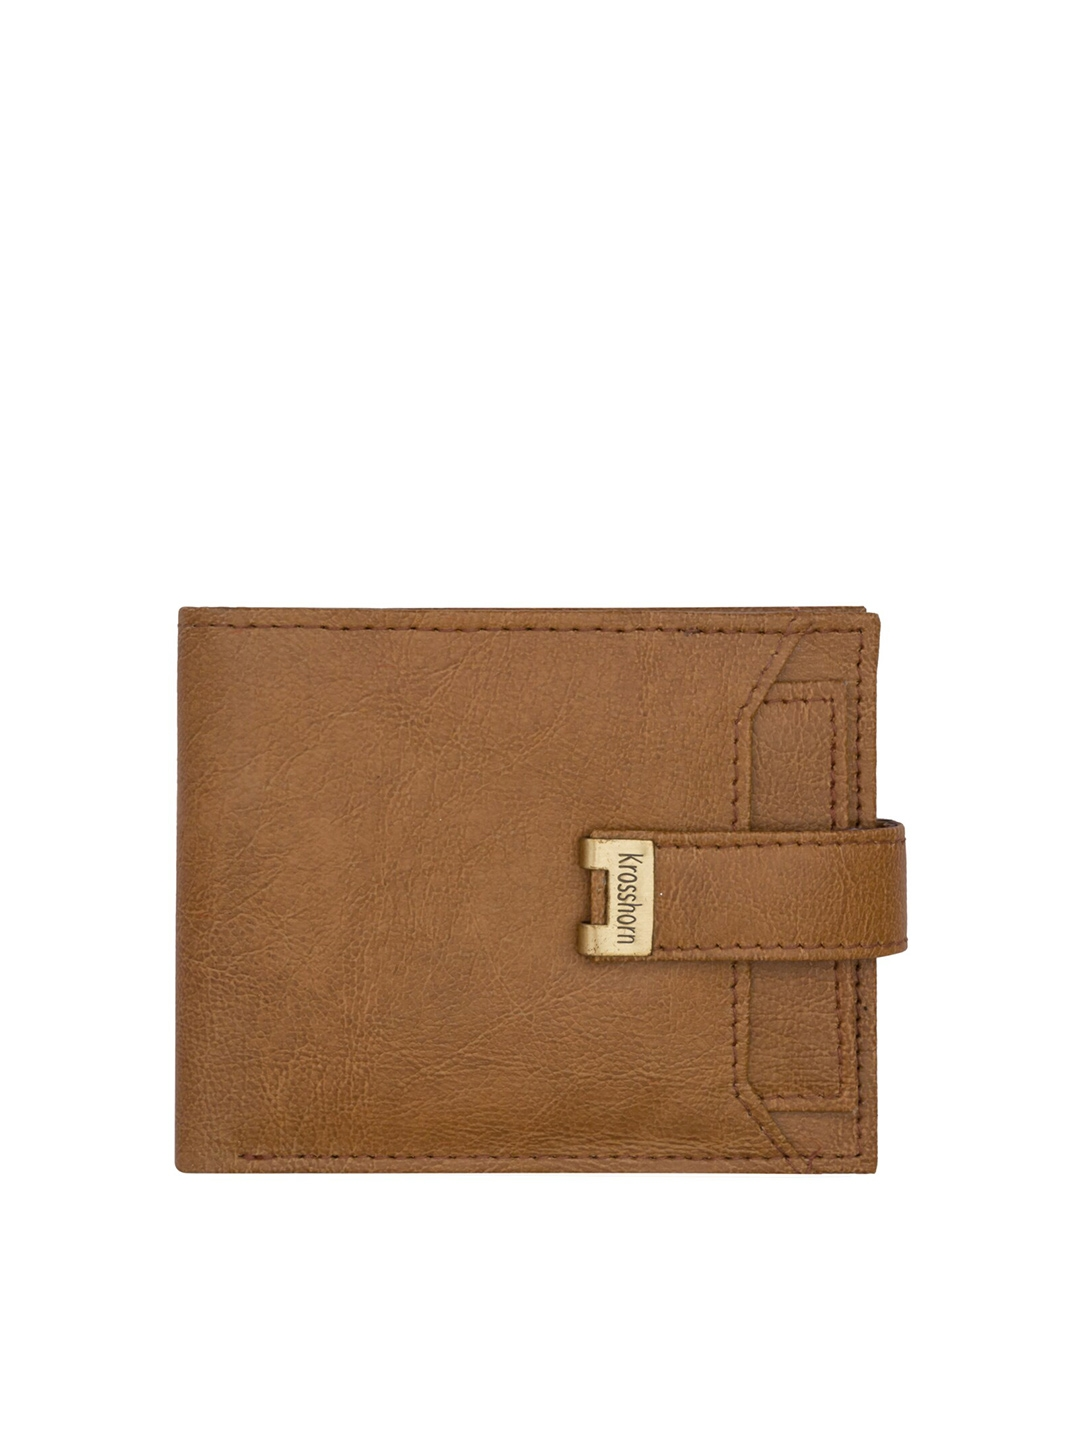 Krosshorn Men Tan Brown Solid RFID Protected Leather Two Fold Wallet